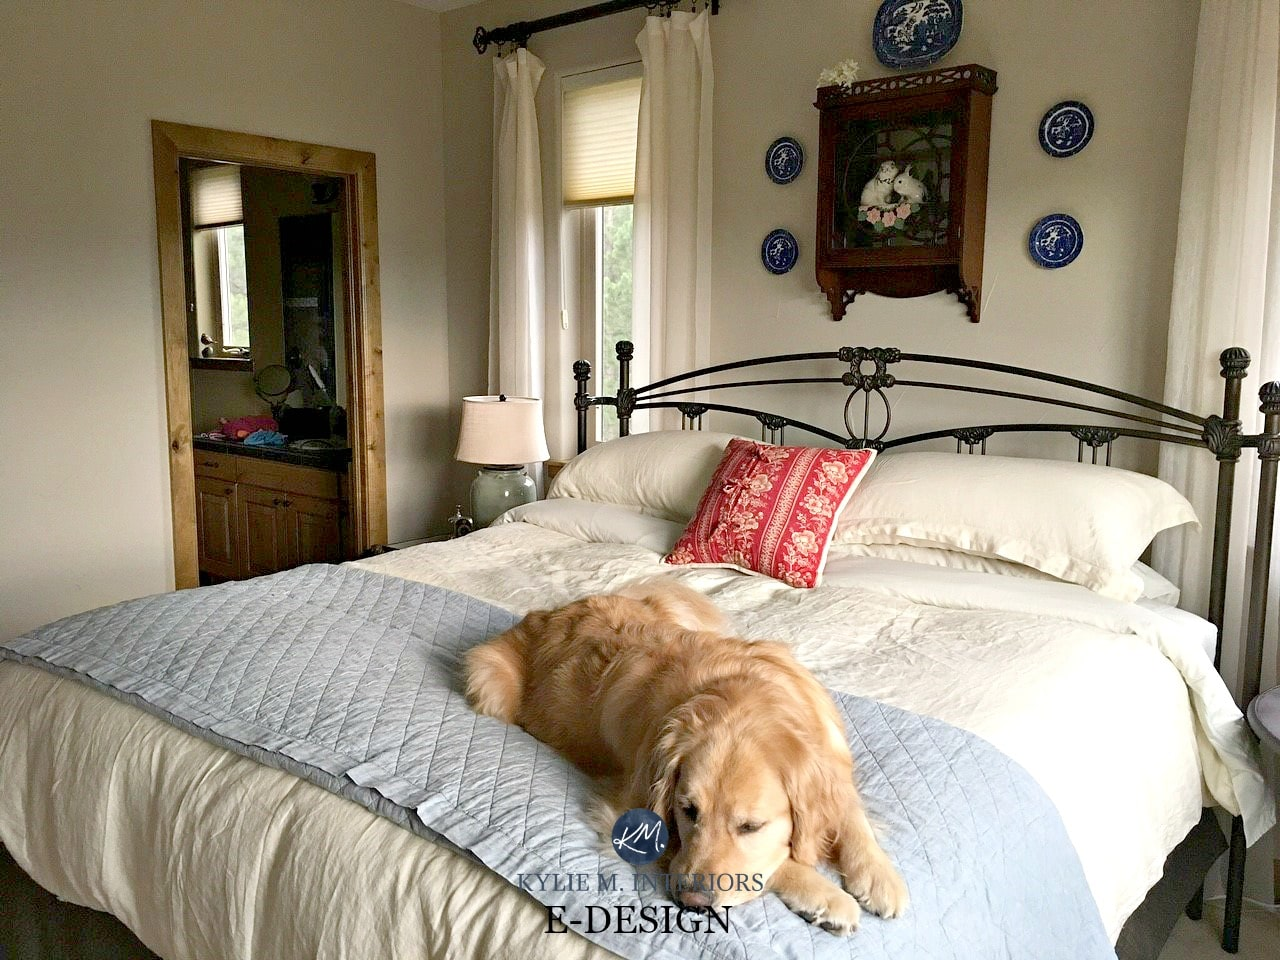 sherwin williams accessible beige in country farmhouse 15032 | sherwin williams accessible beige in country farmhouse style guest bedroom wood trim neutral bed linens kylie m e design and online color consulting